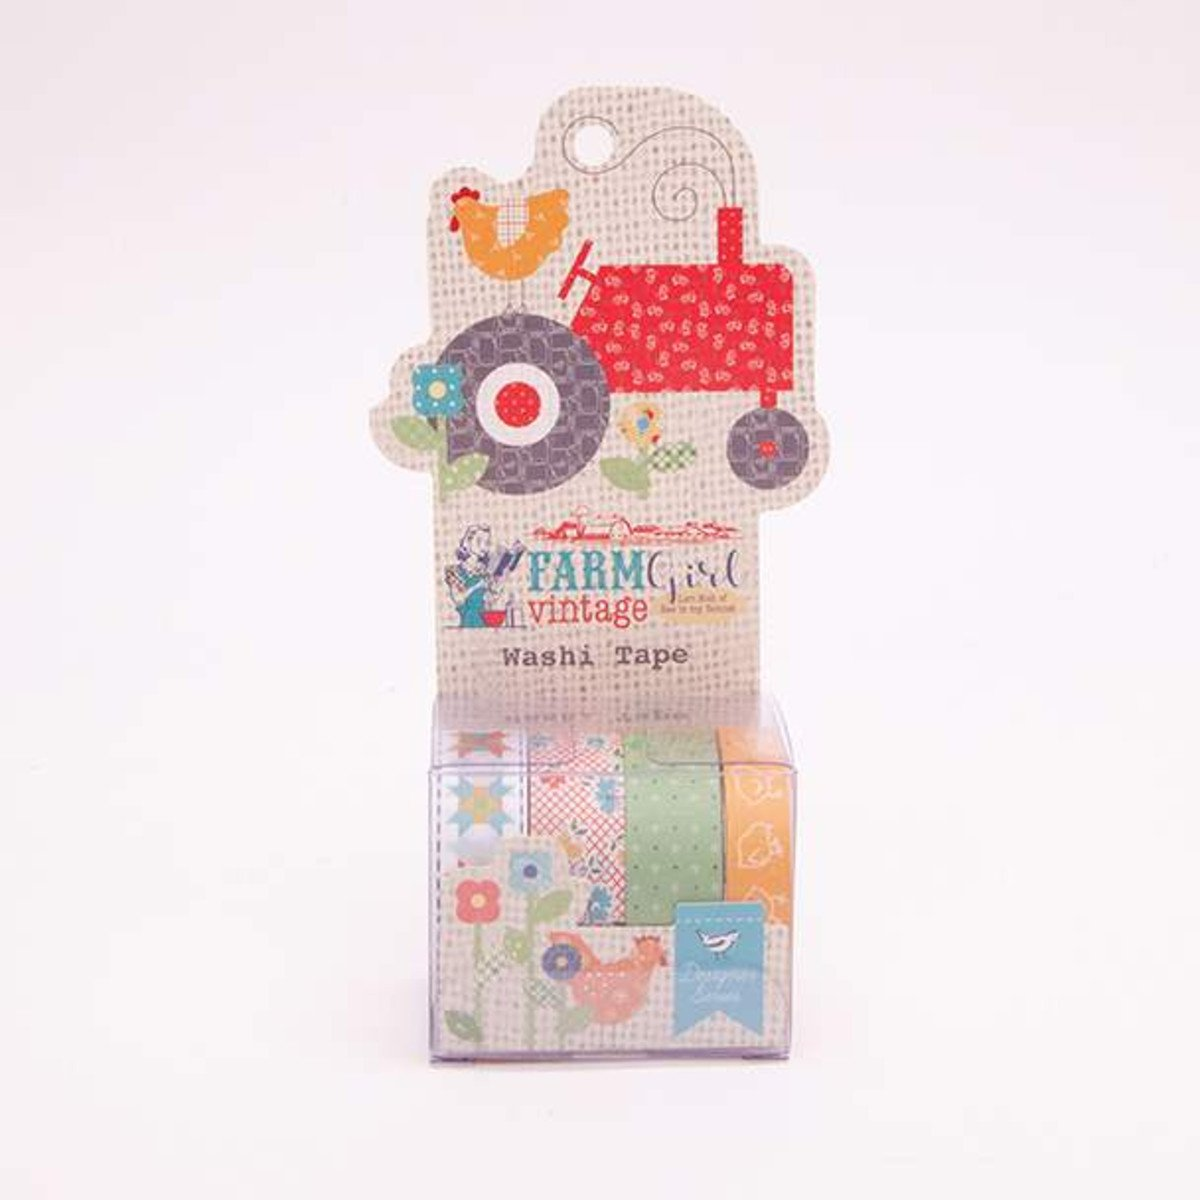 Washi Tape Farmgirl Vintage